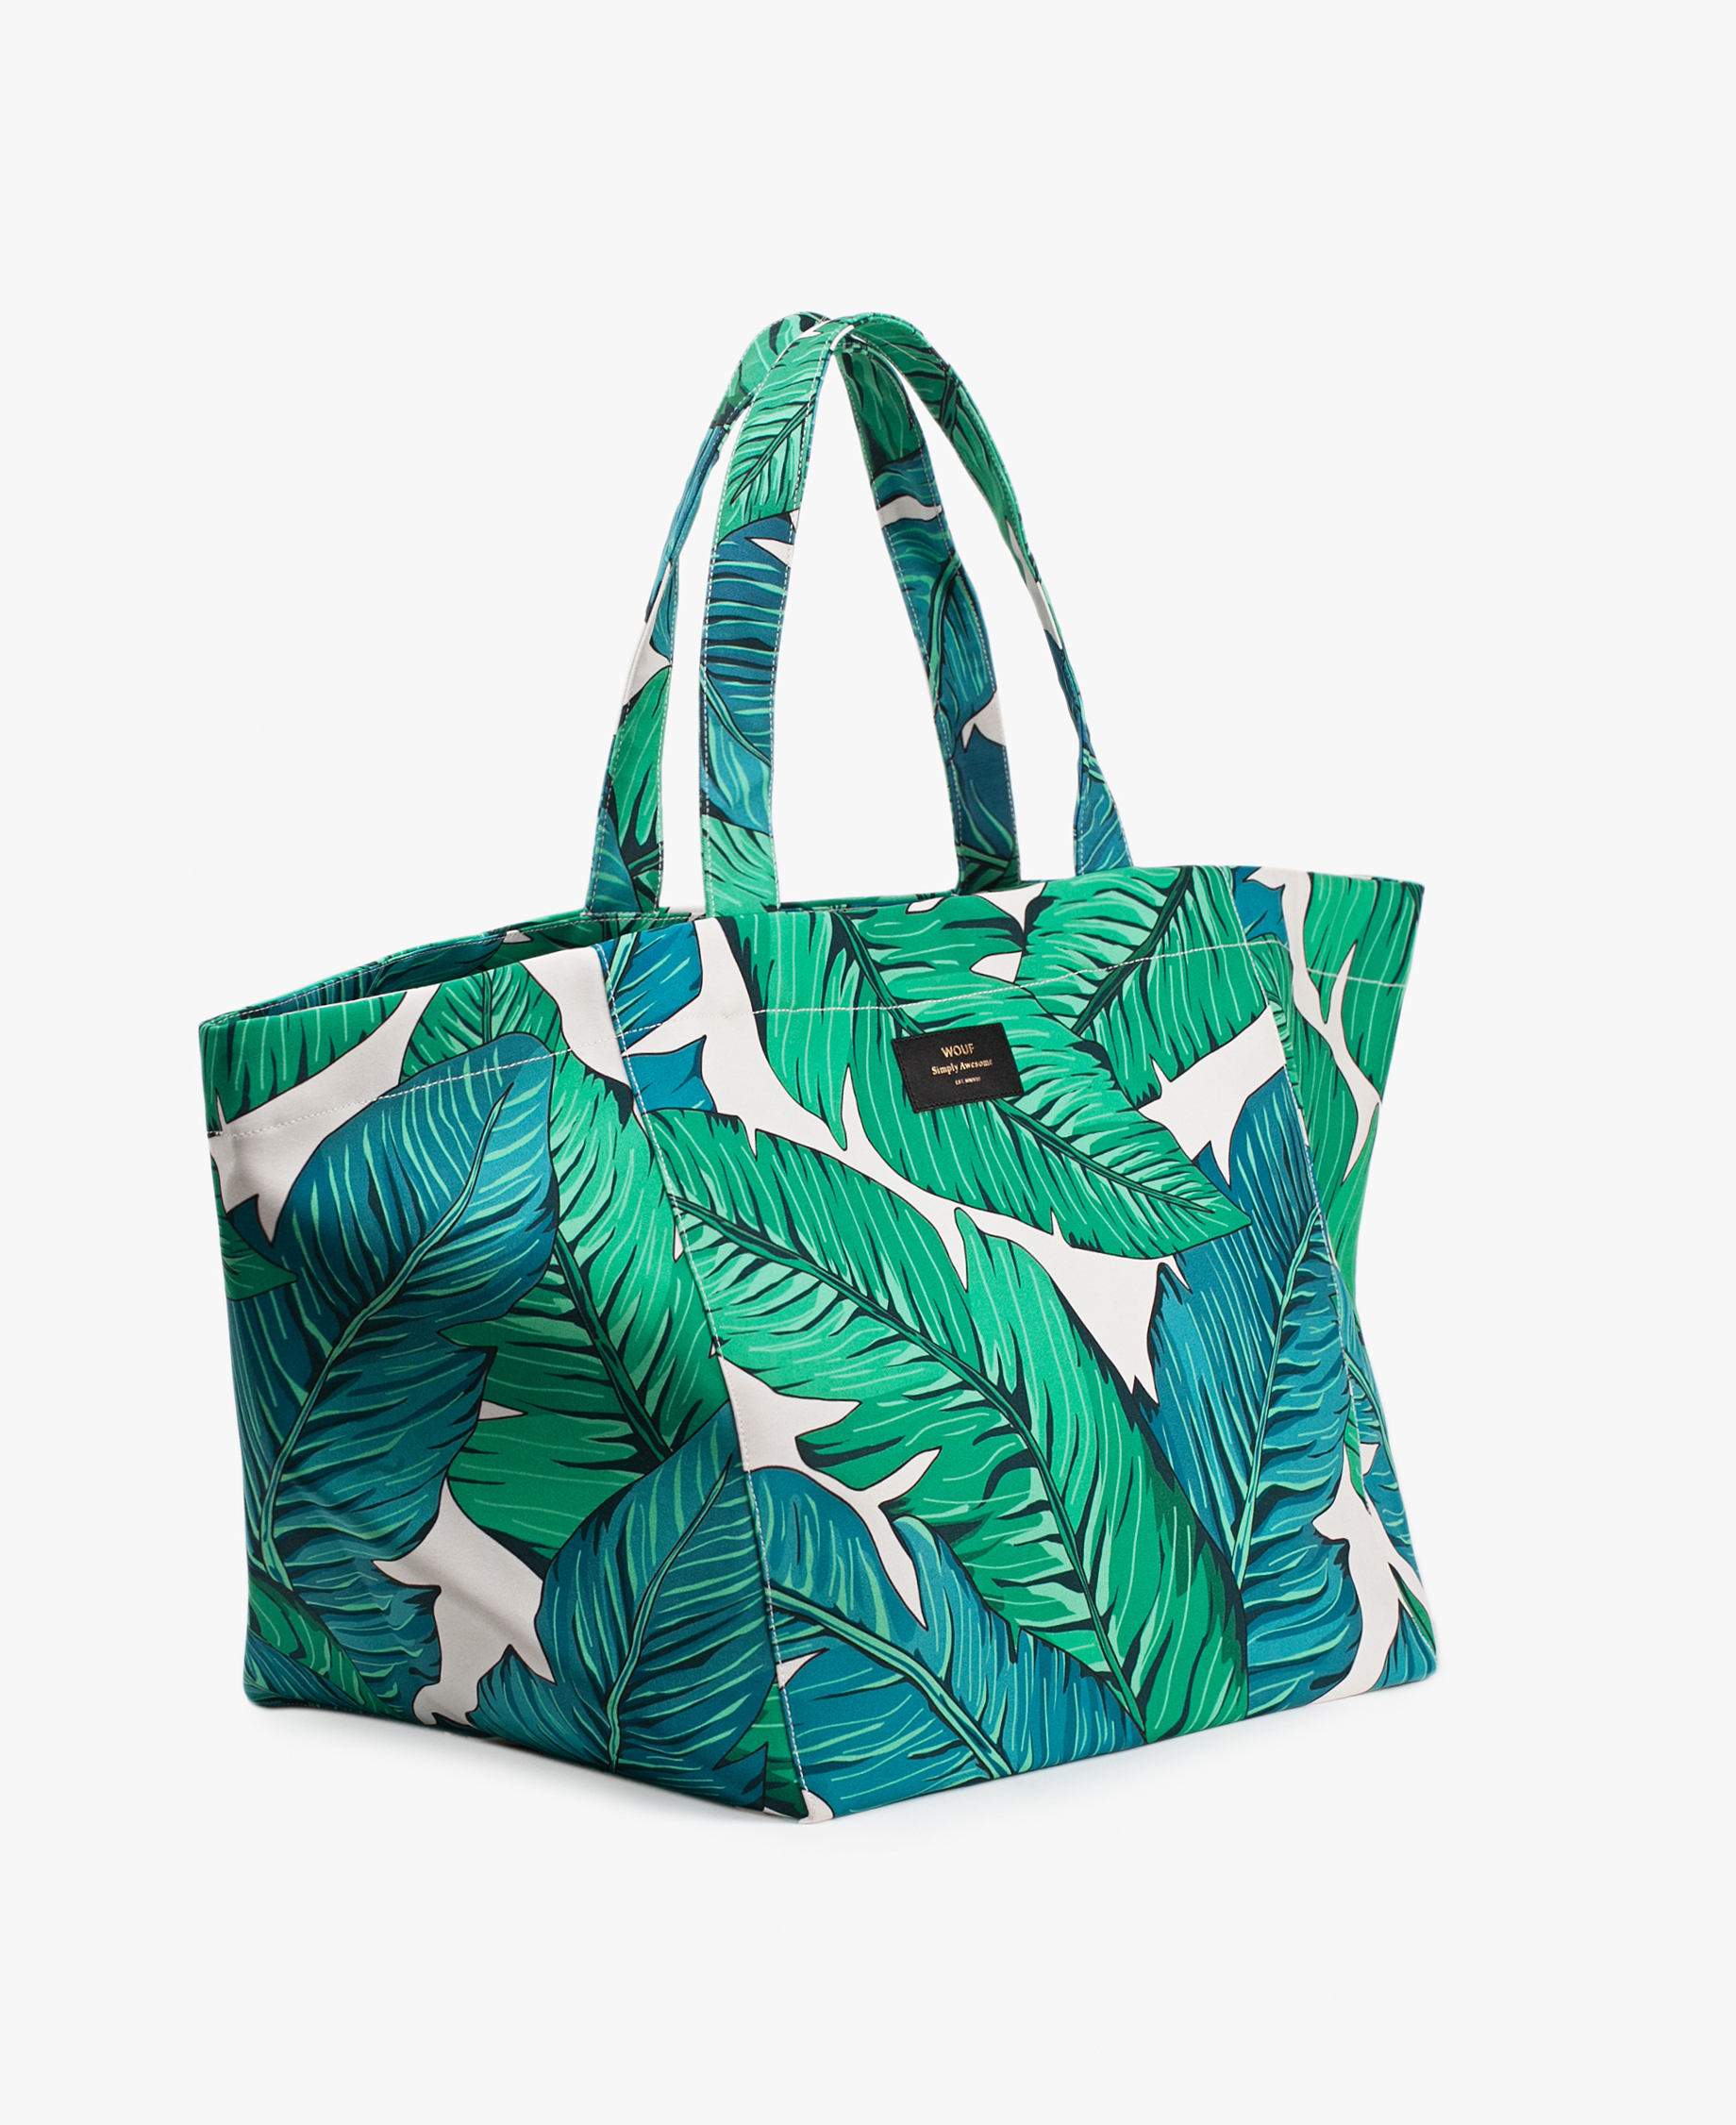 White big bag with green leaves